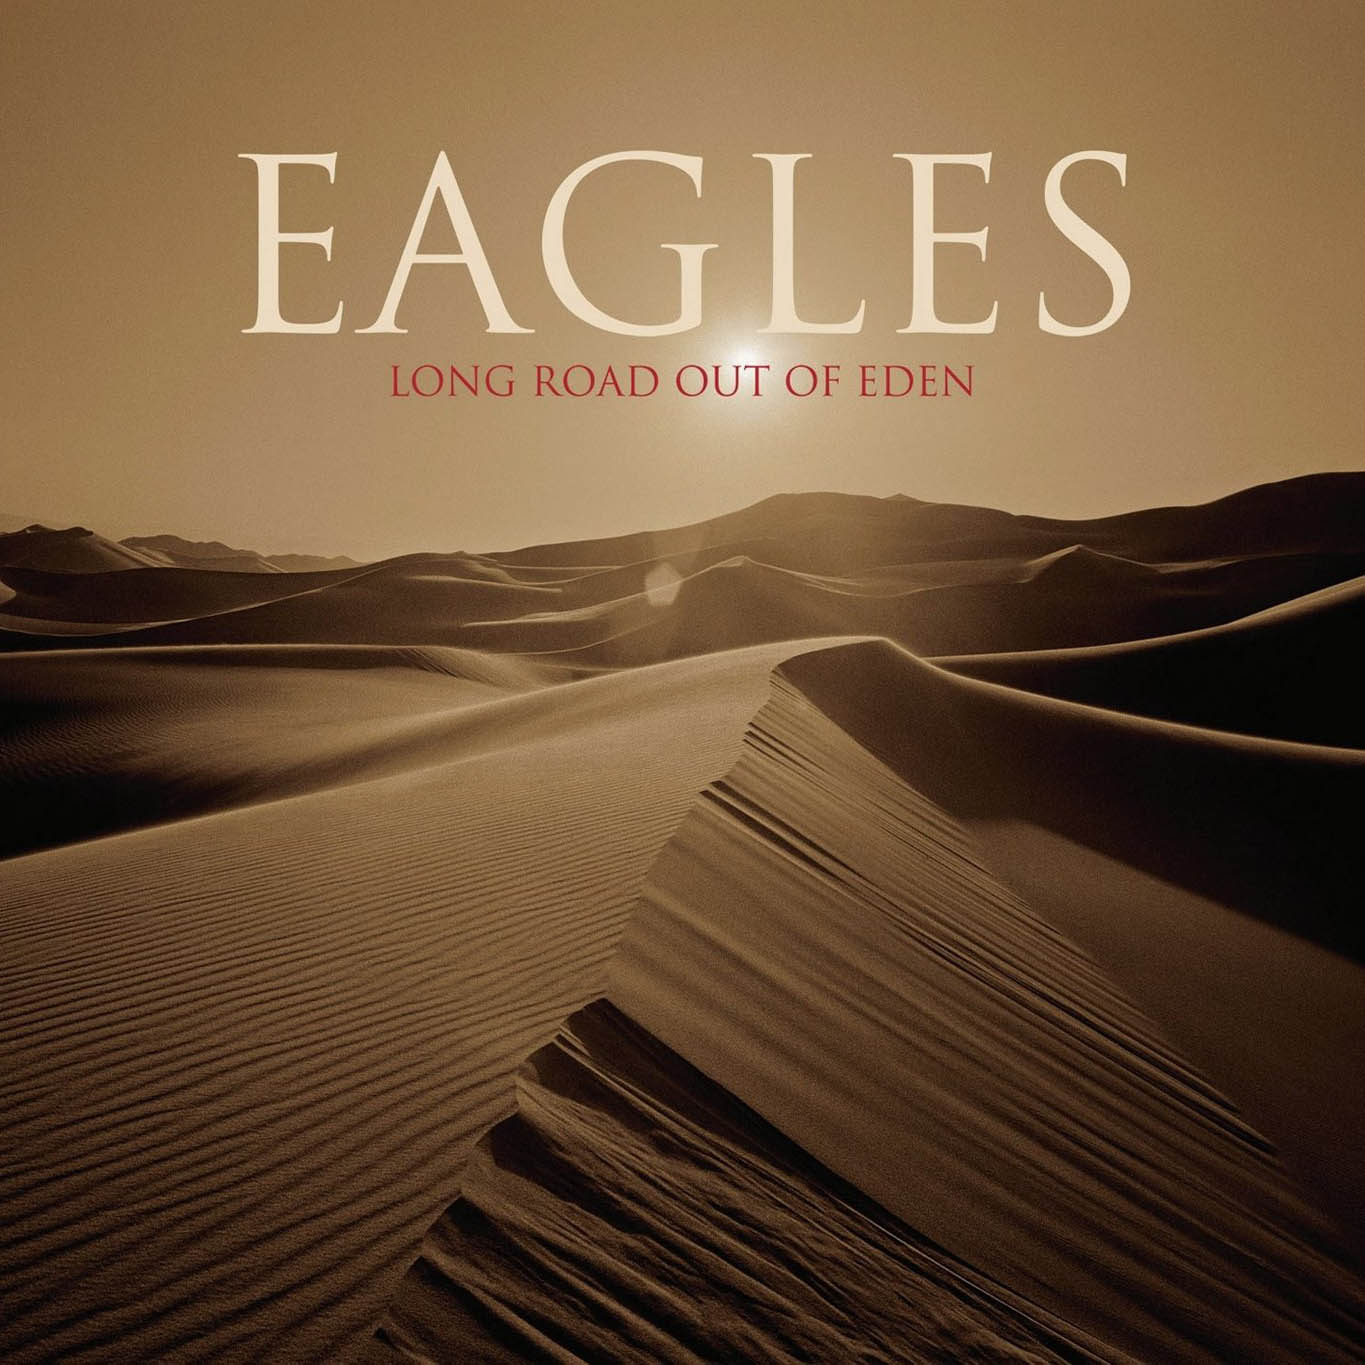 The Eagles, Long Road Out of Eden